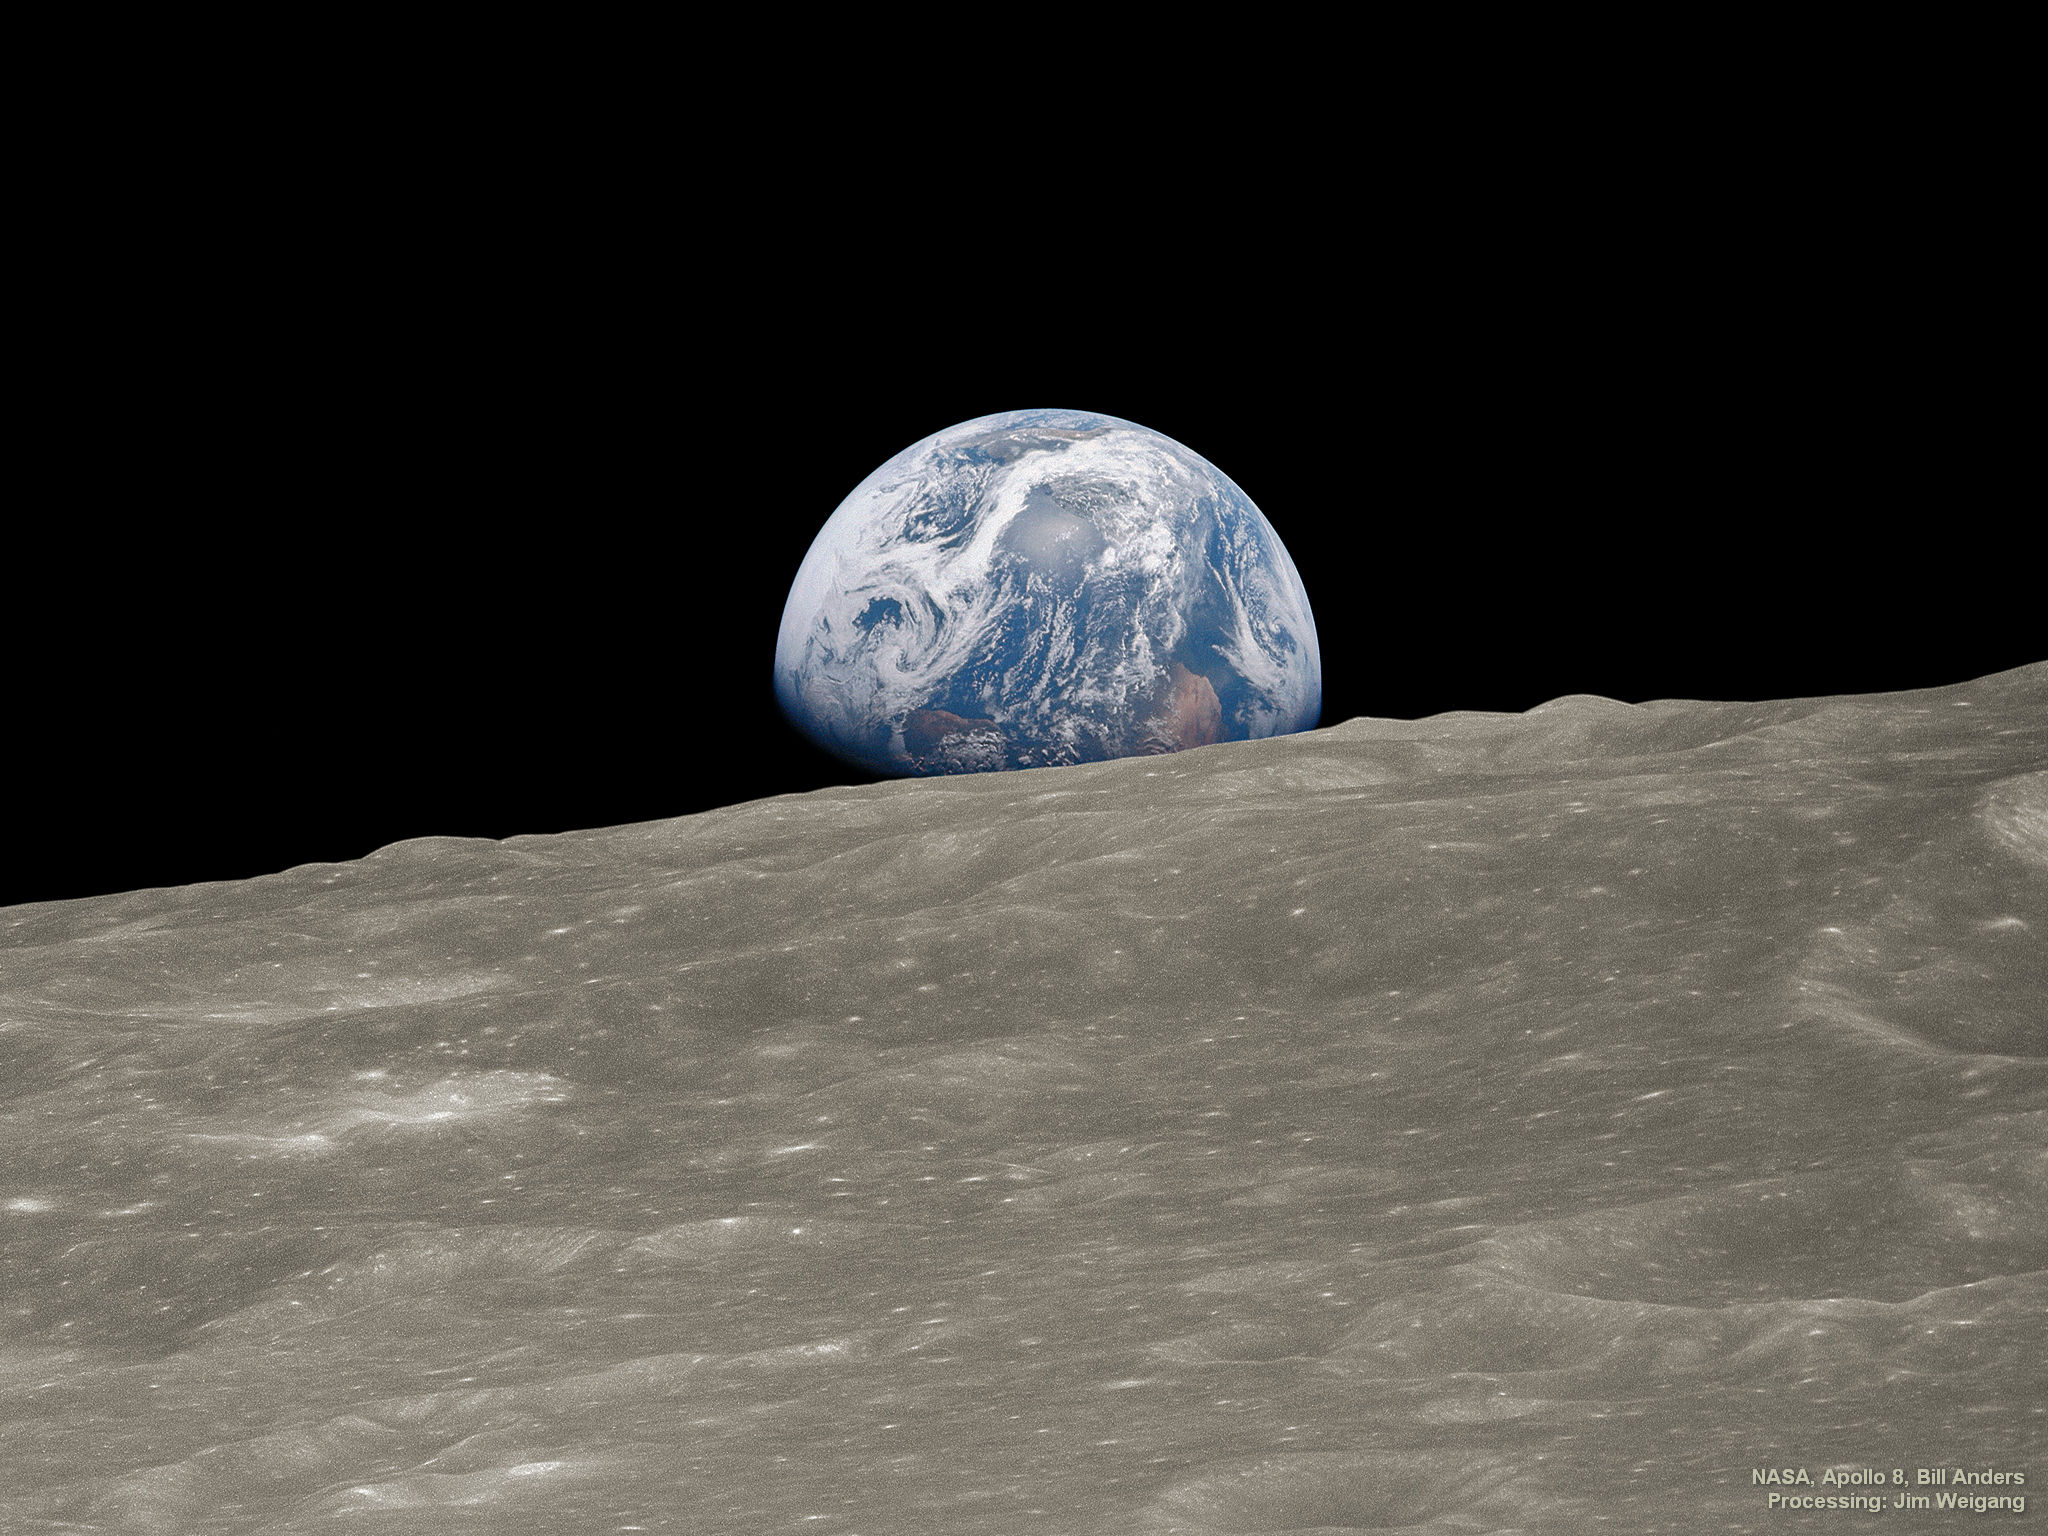 APOD: 2018 December 24 - Earthrise 1: Historic Image Remastered